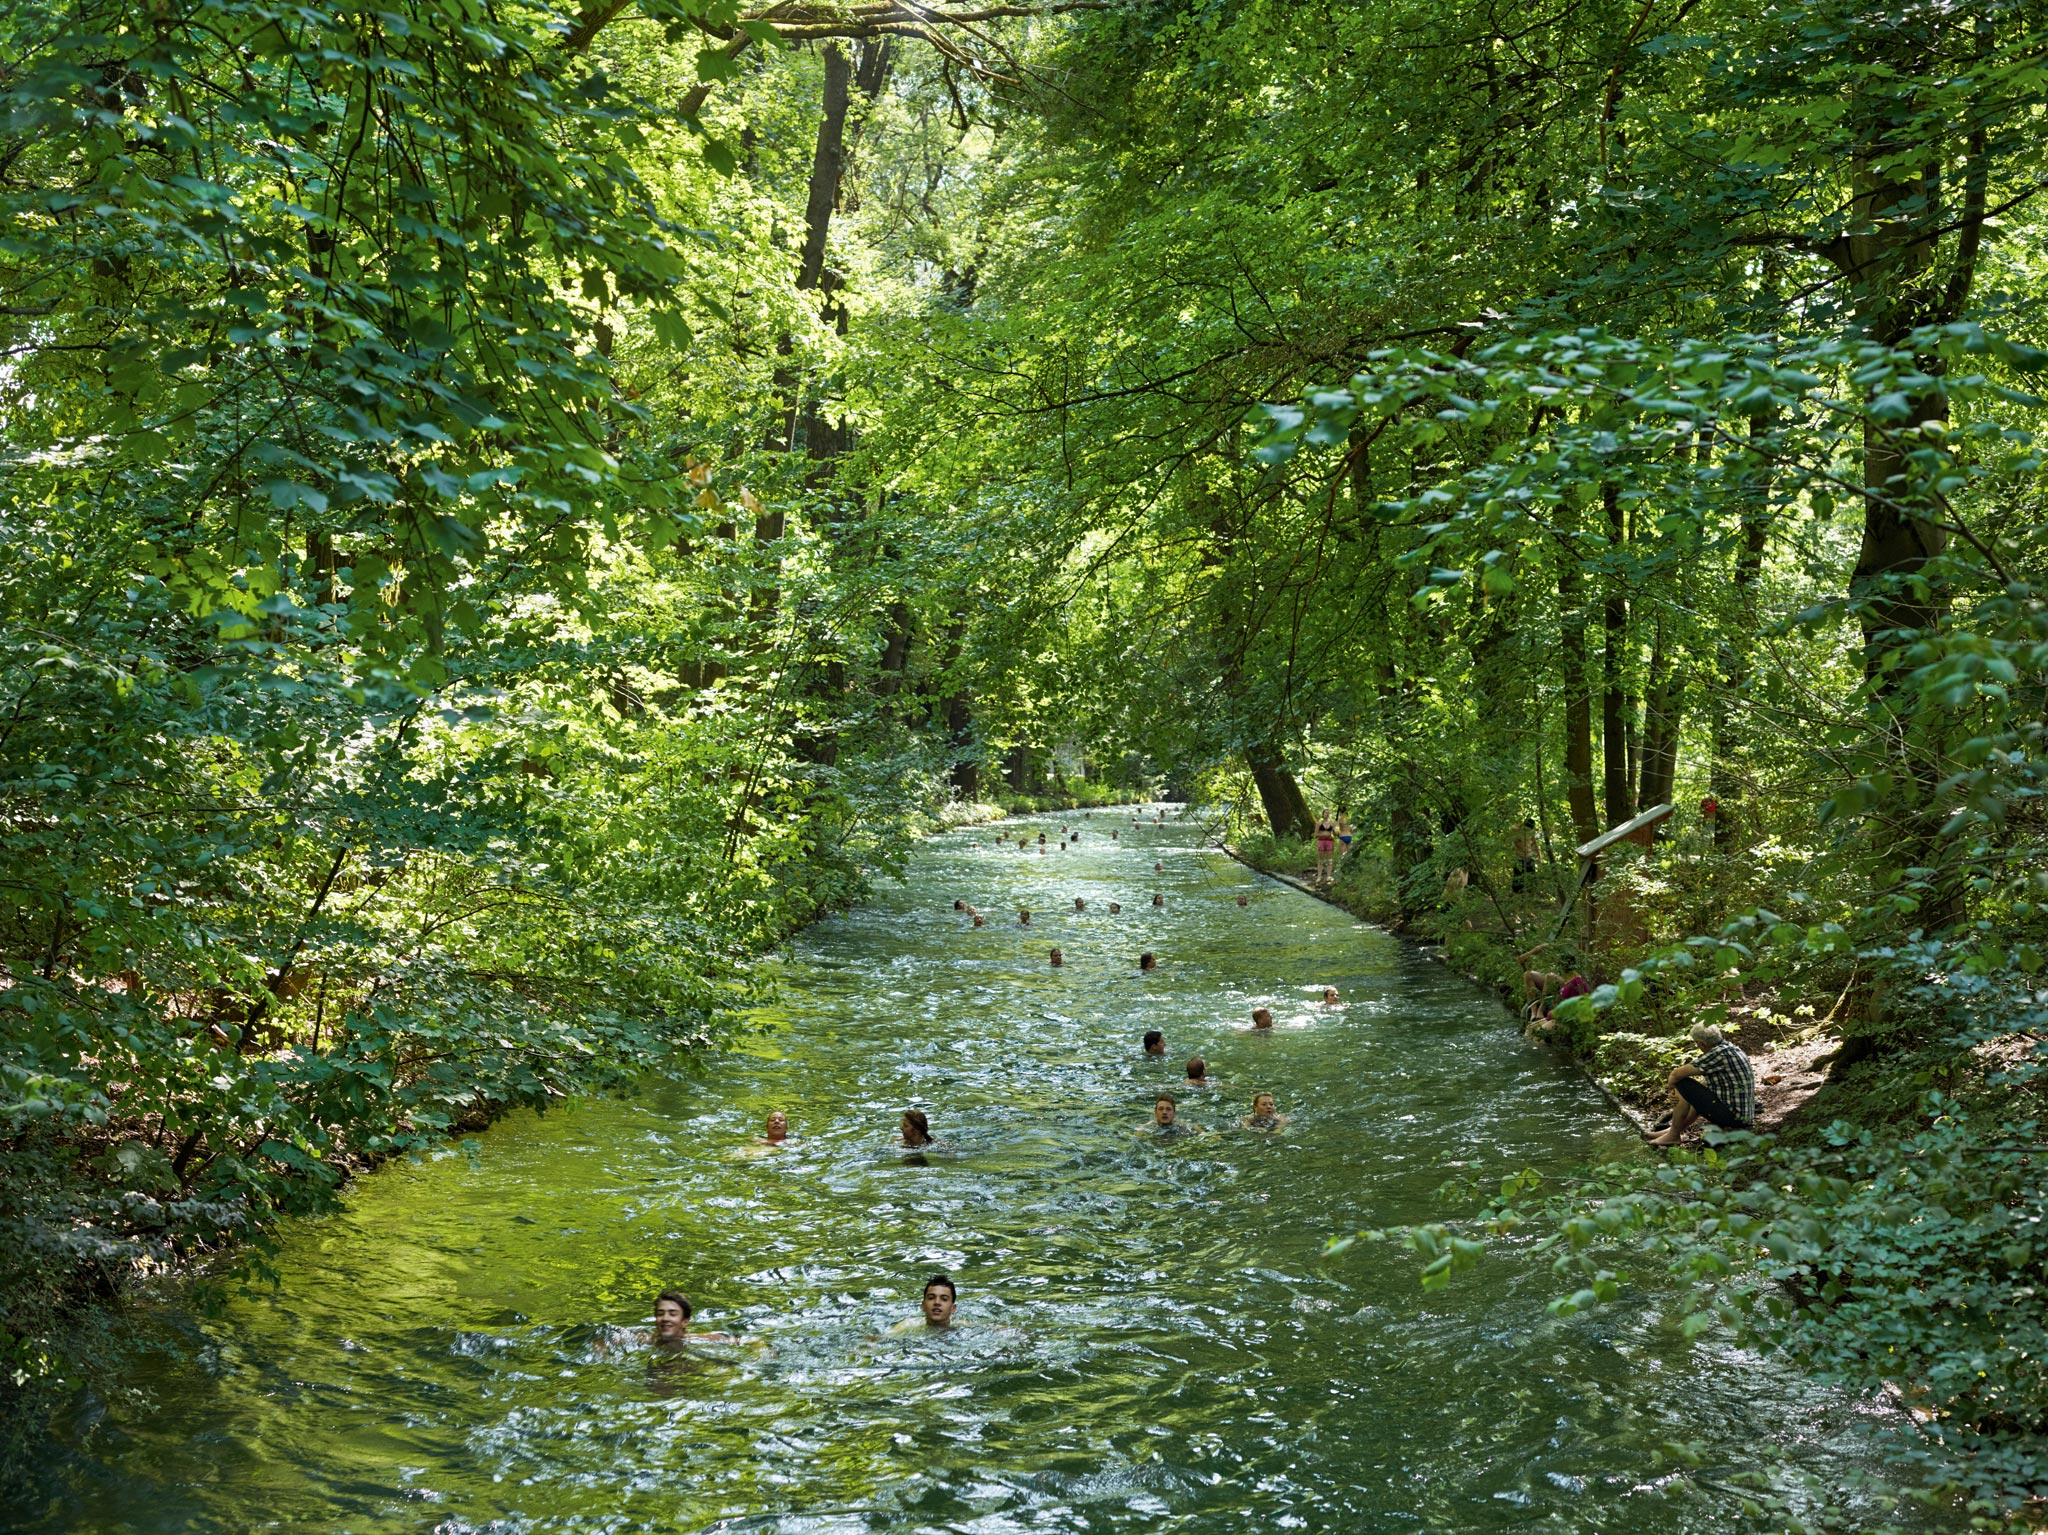 beauty of nature essay how urban parks are bringing nature close to ...